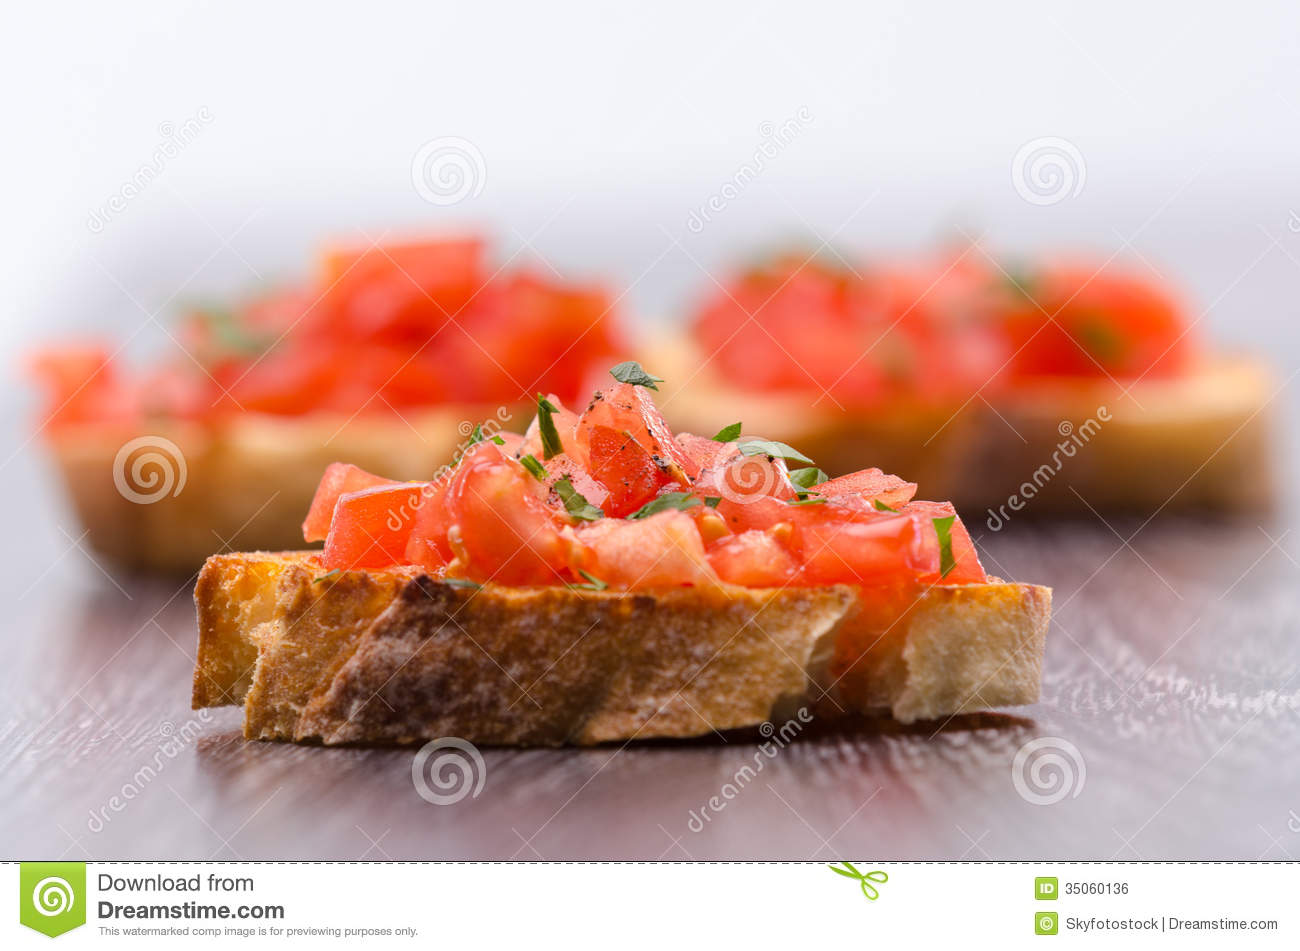 Tomato Bruschetta with olive oil, garlic and fresh basil leaves.